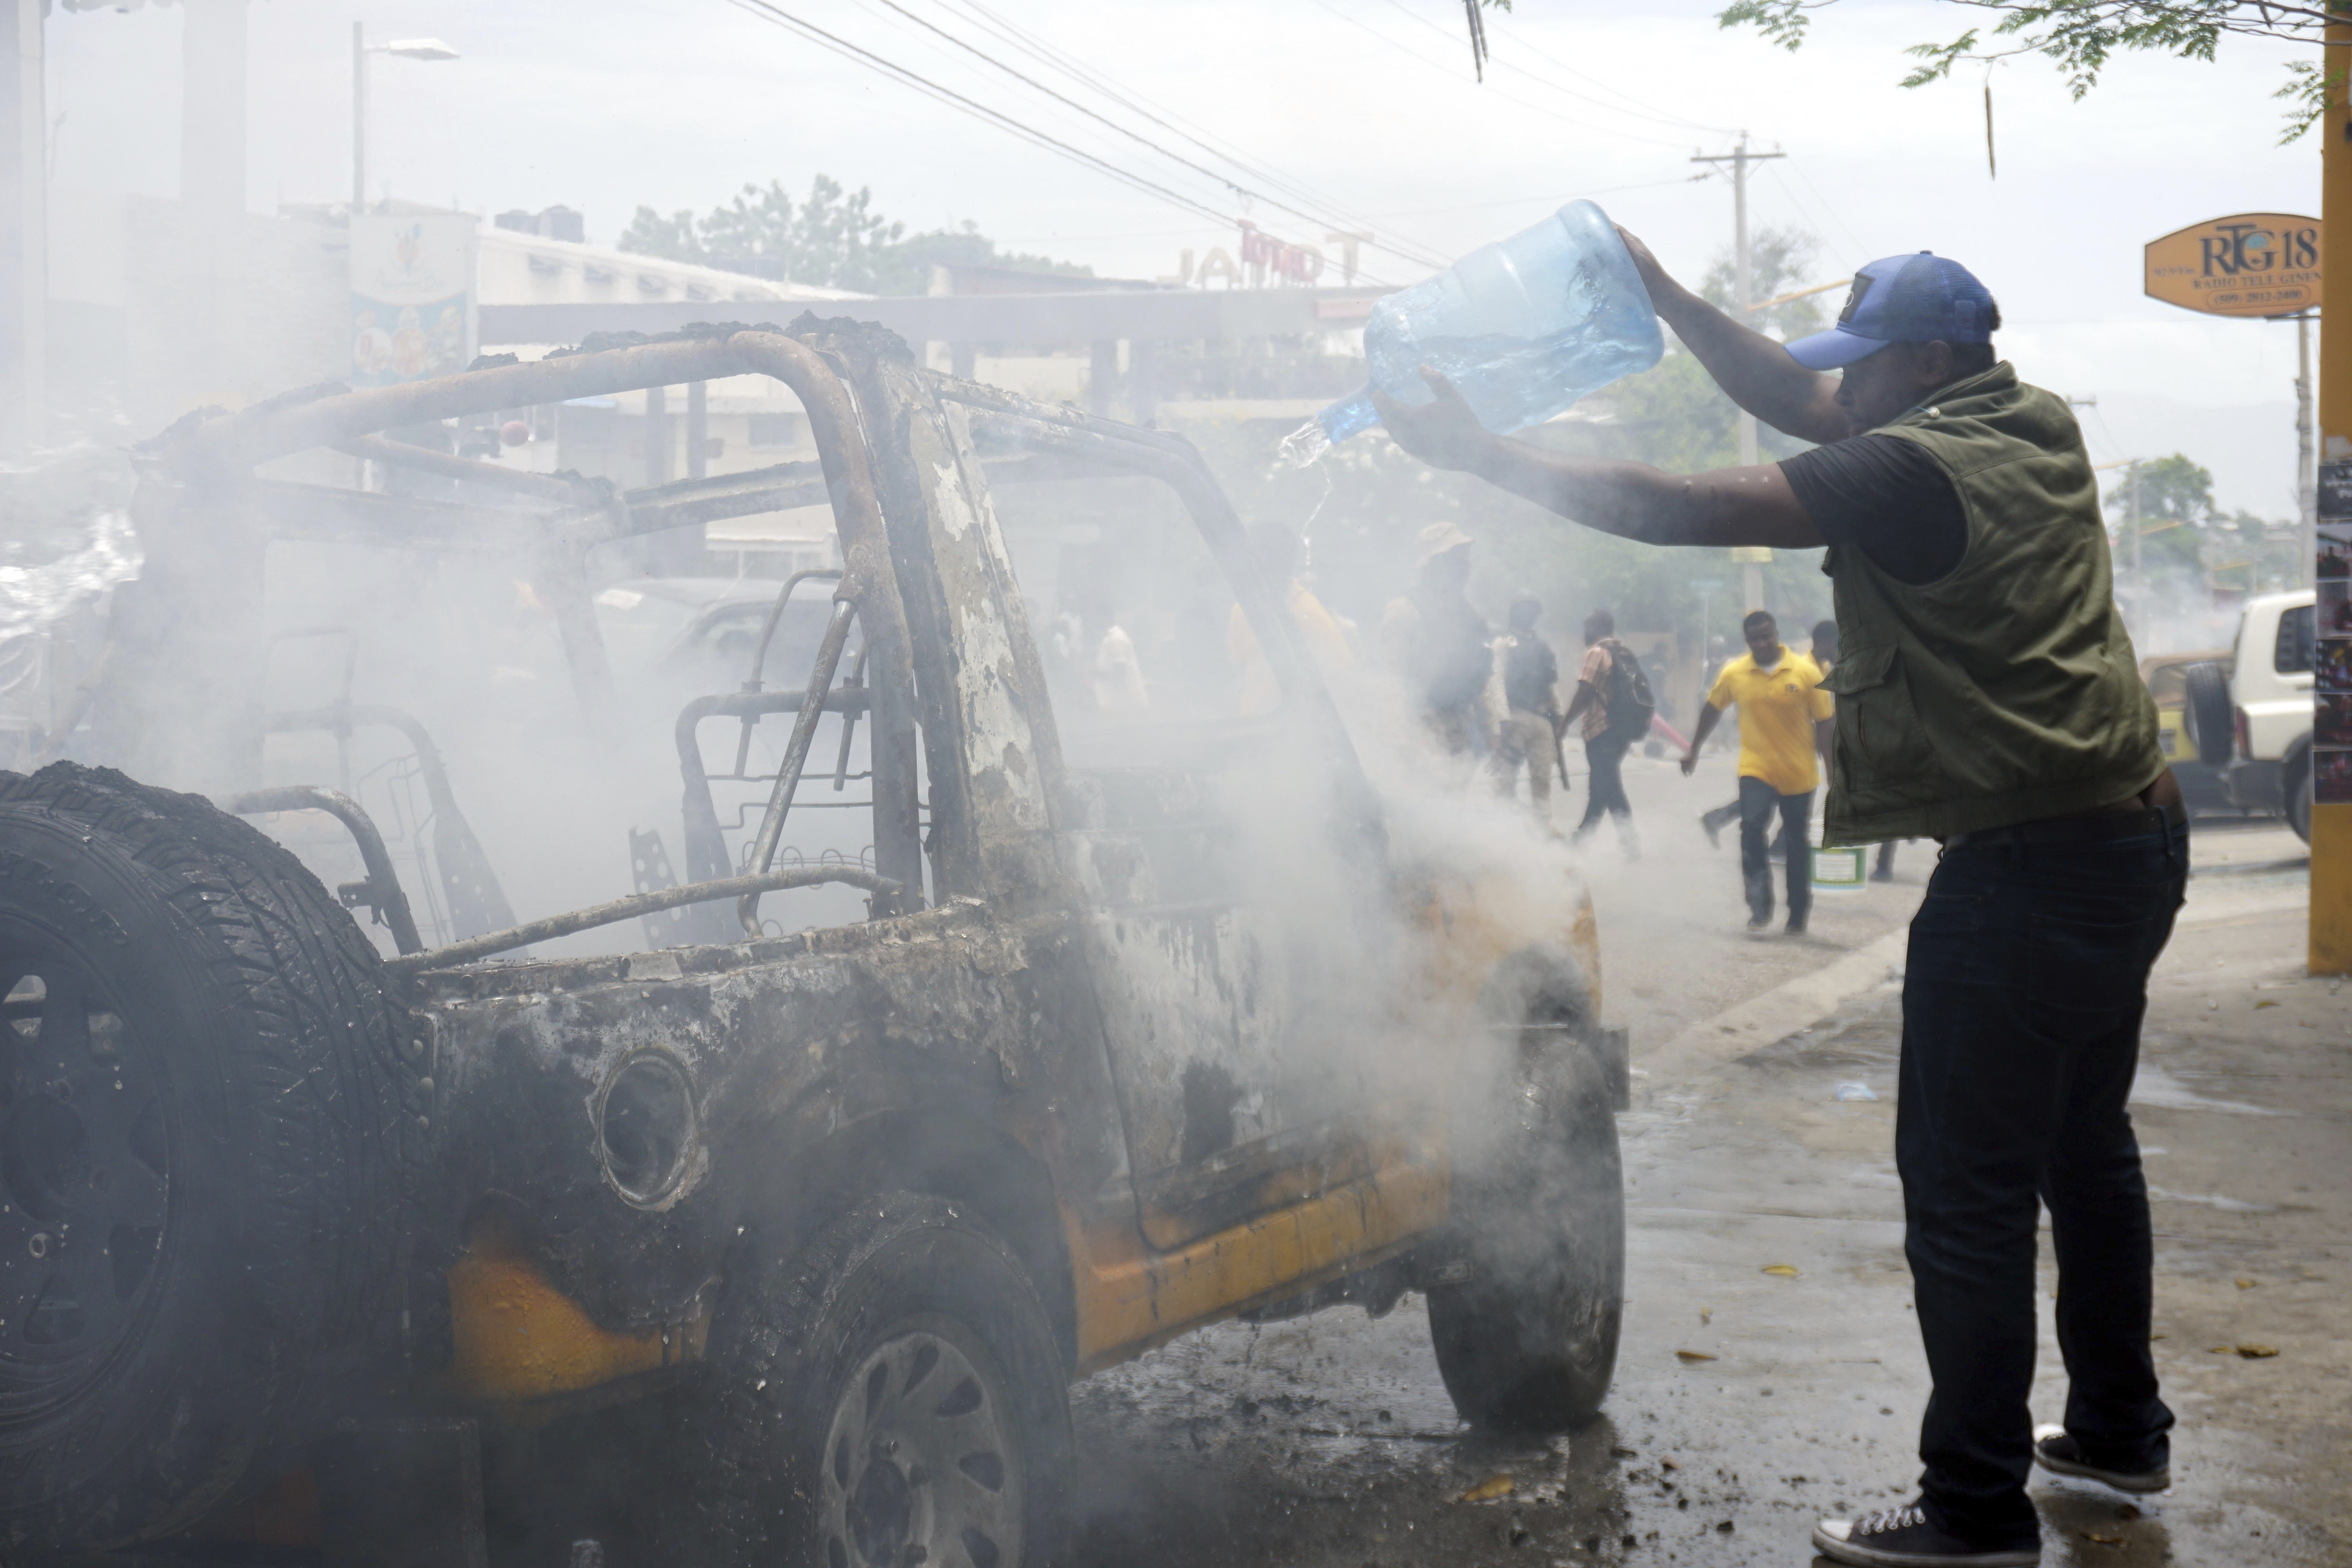 Journalist throws water on burning vehicle in Port au Prince